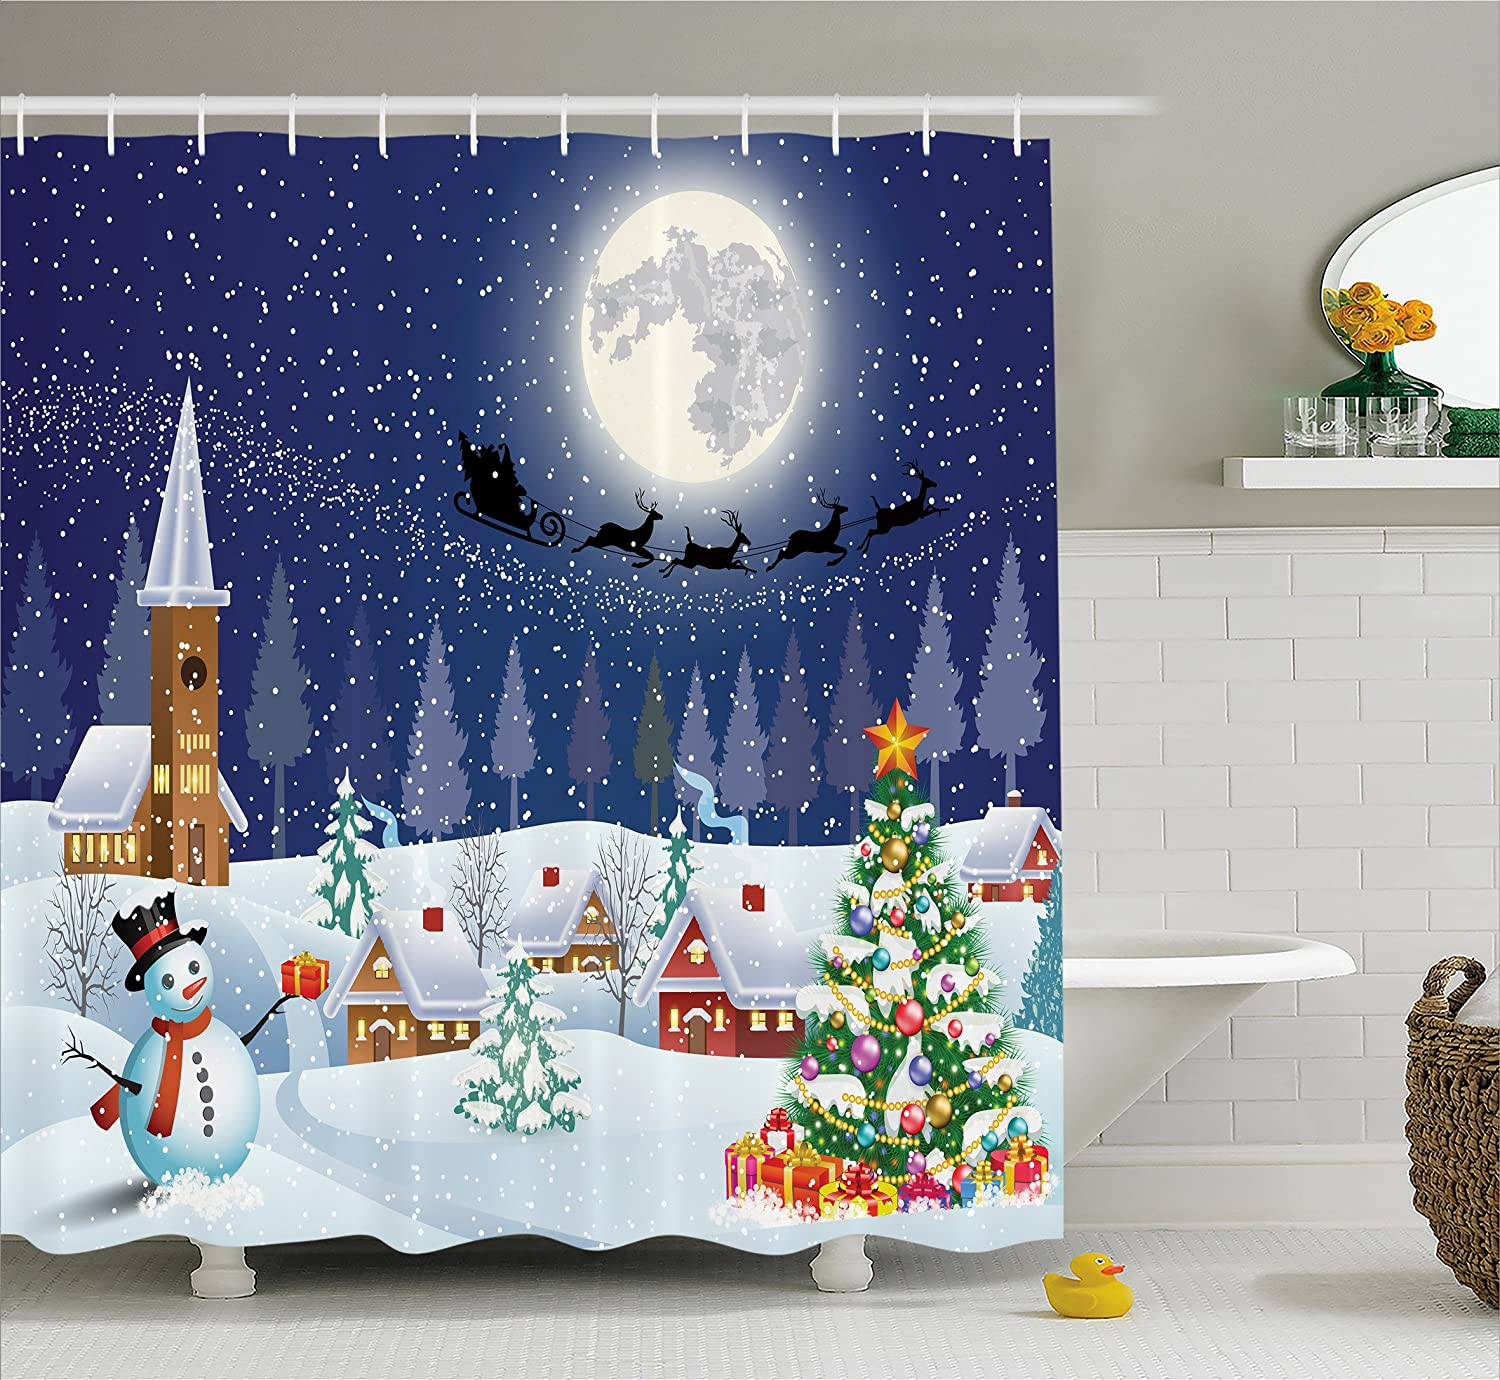 amazoncom ambesonne christmas shower curtain winter season snowman xmas tree santa sleigh moon present boxes snow and stars fabric bathroom decor set